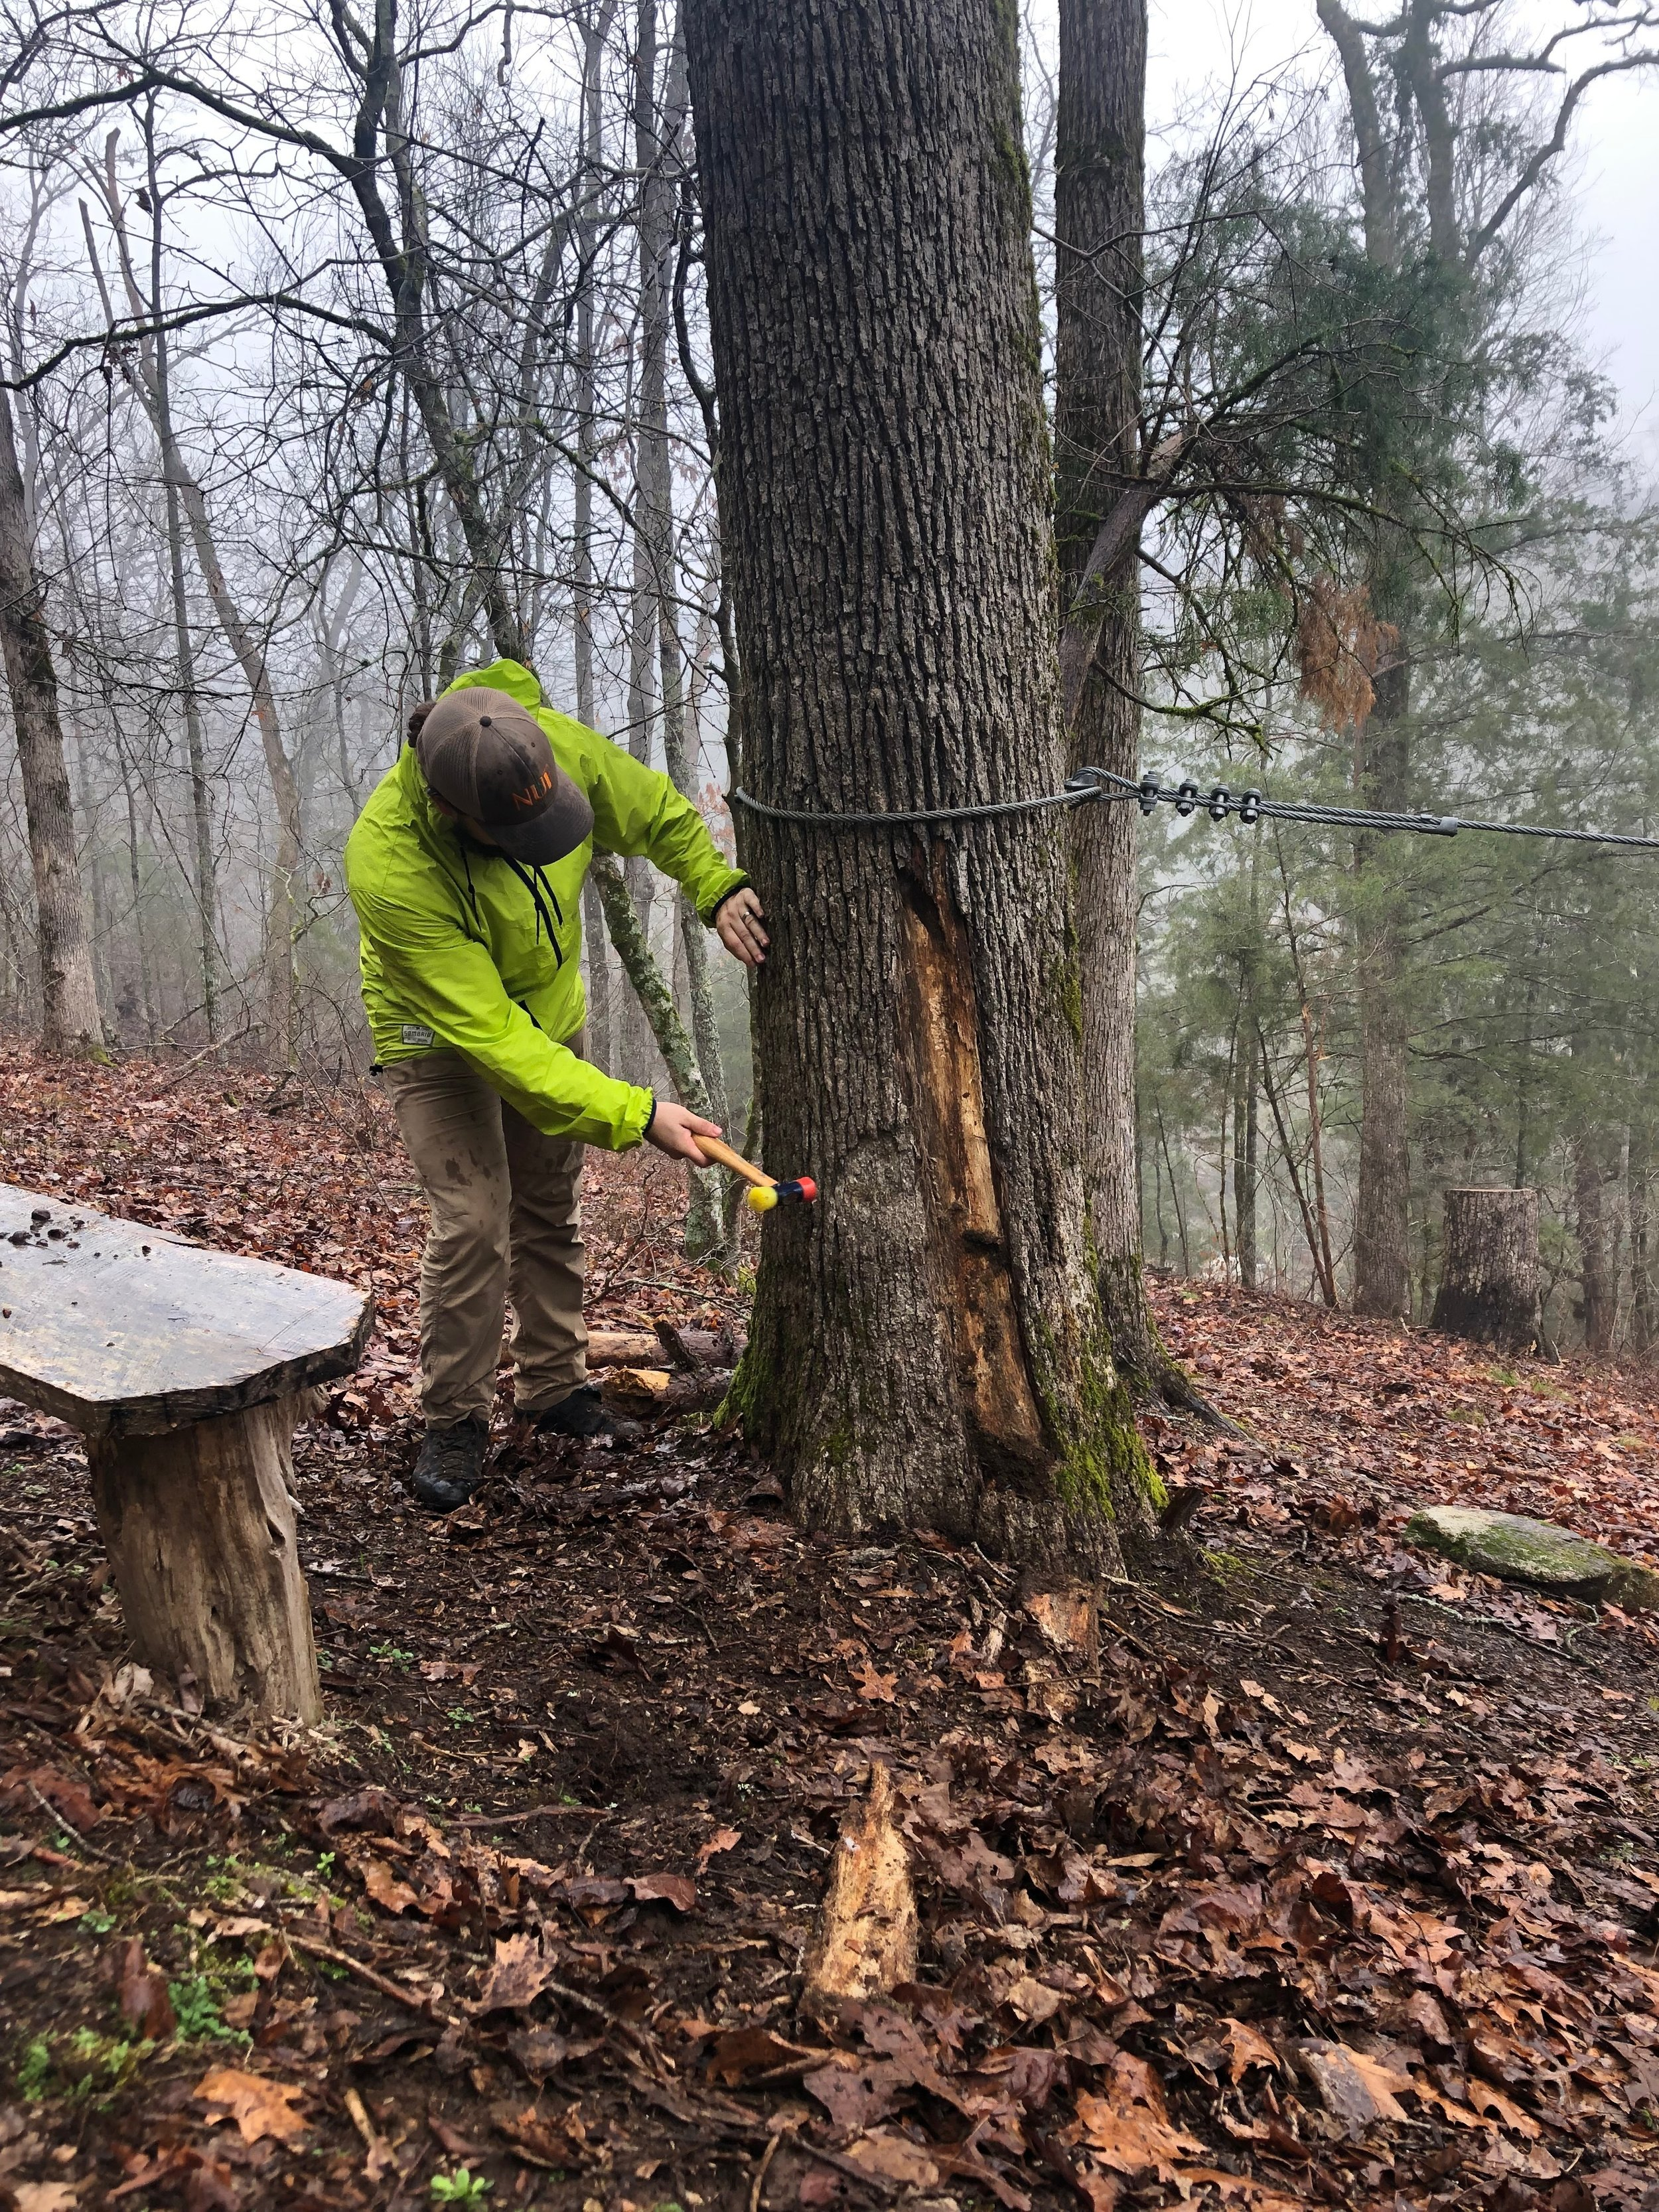 Certified Arborist, Aaron Byer, performs a tree risk assessment analysis on a tree that was struck by lightning. Byer is certified by the International Society of Arboriculture to perform Tree Risk Assessments.